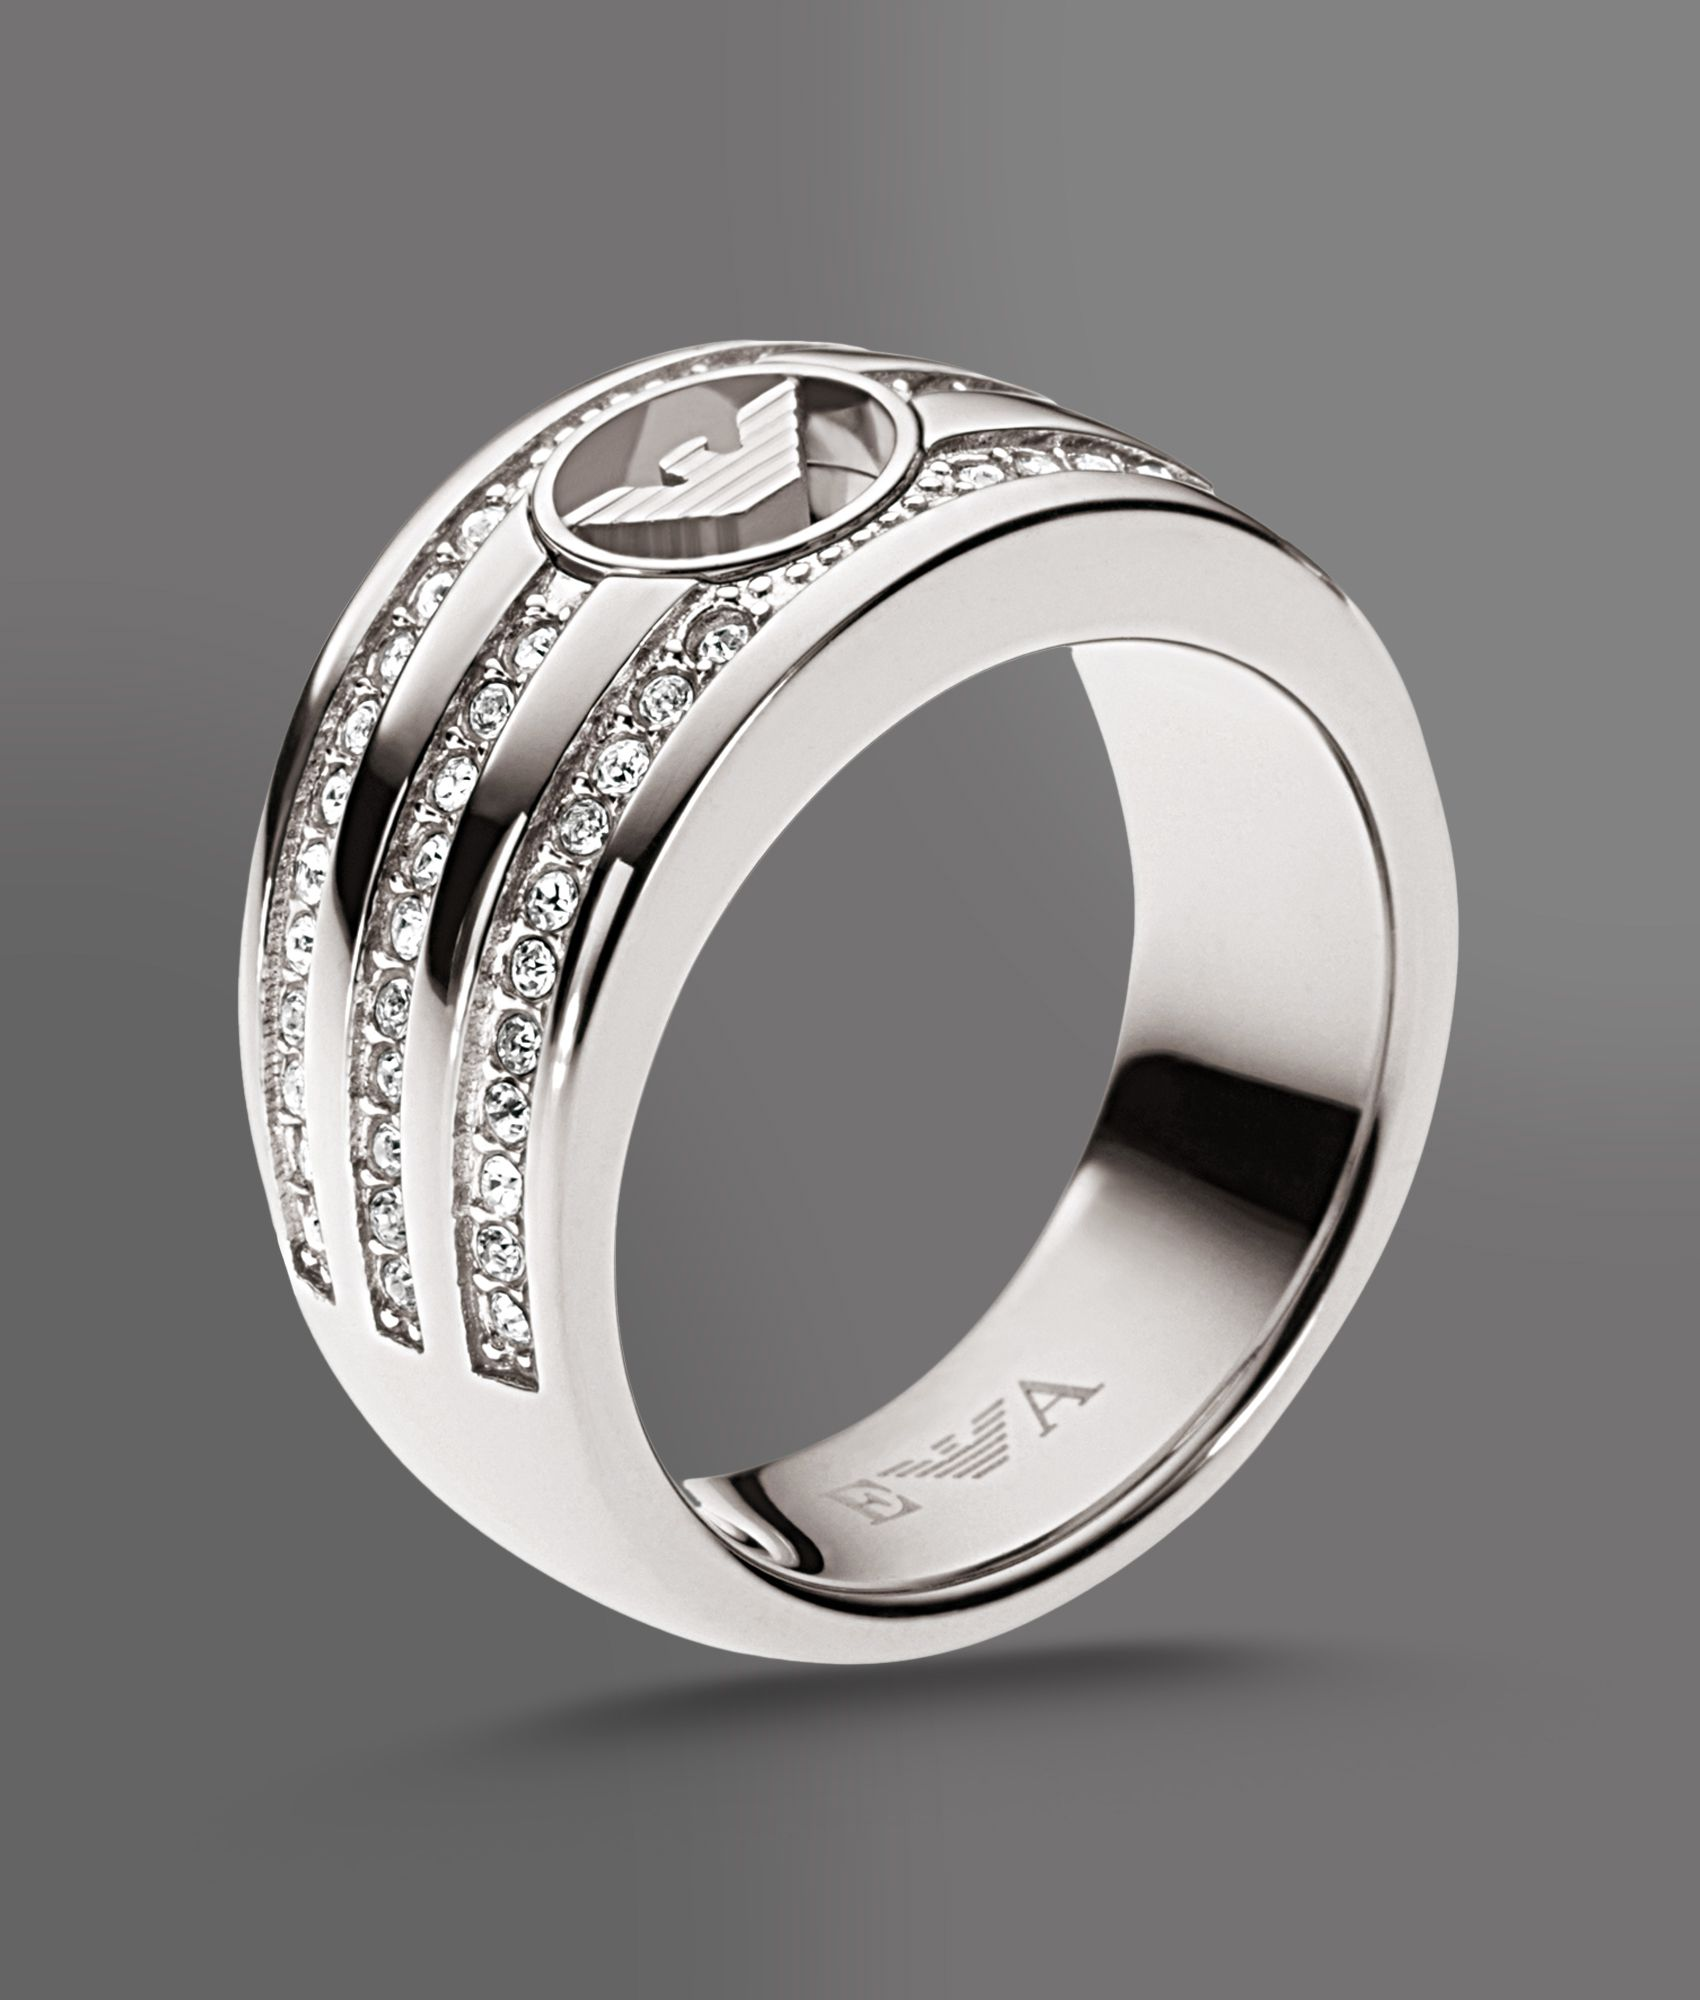 Lyst Emporio Armani Ring In Steel And Crystals In Metallic